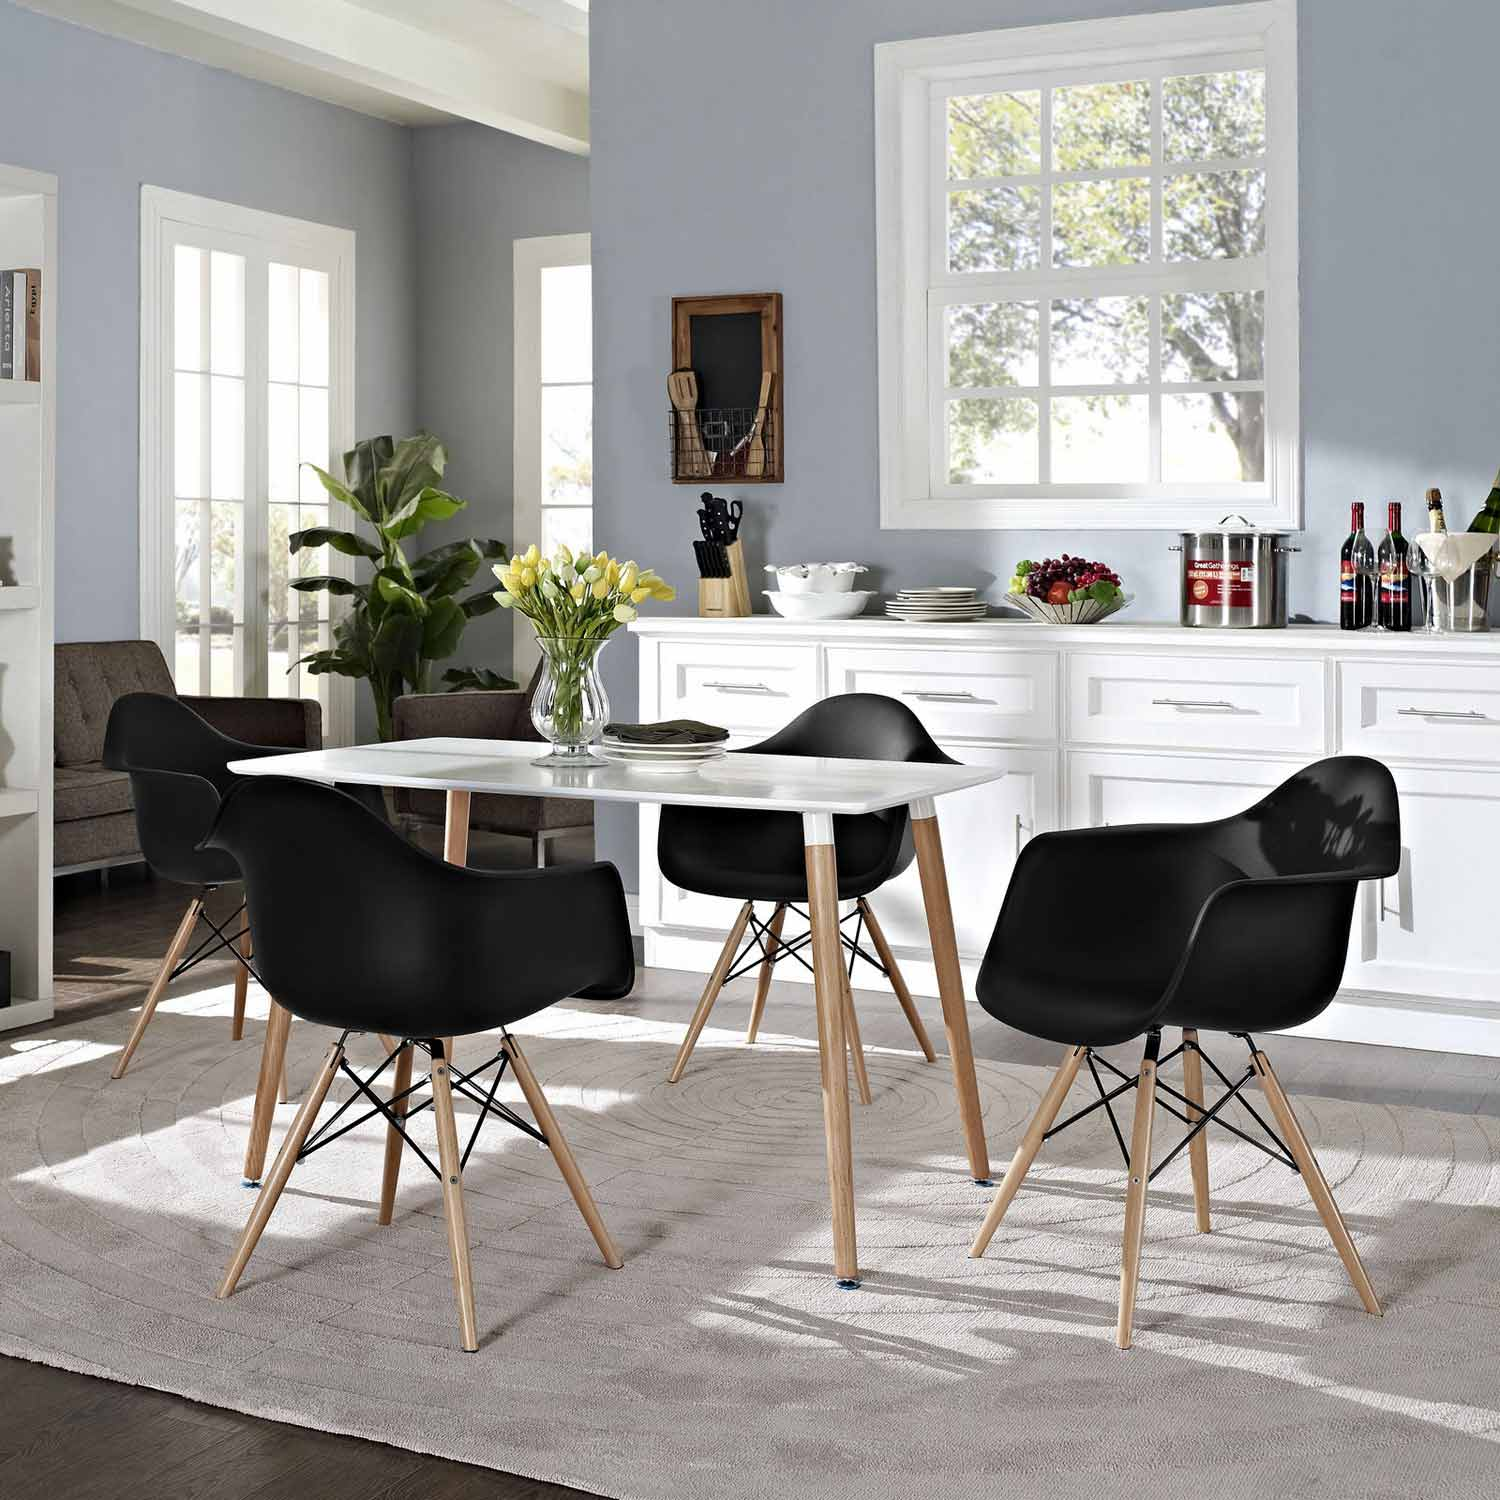 Modway Pyramid 4Pc Dining Side Chairs Set - Black